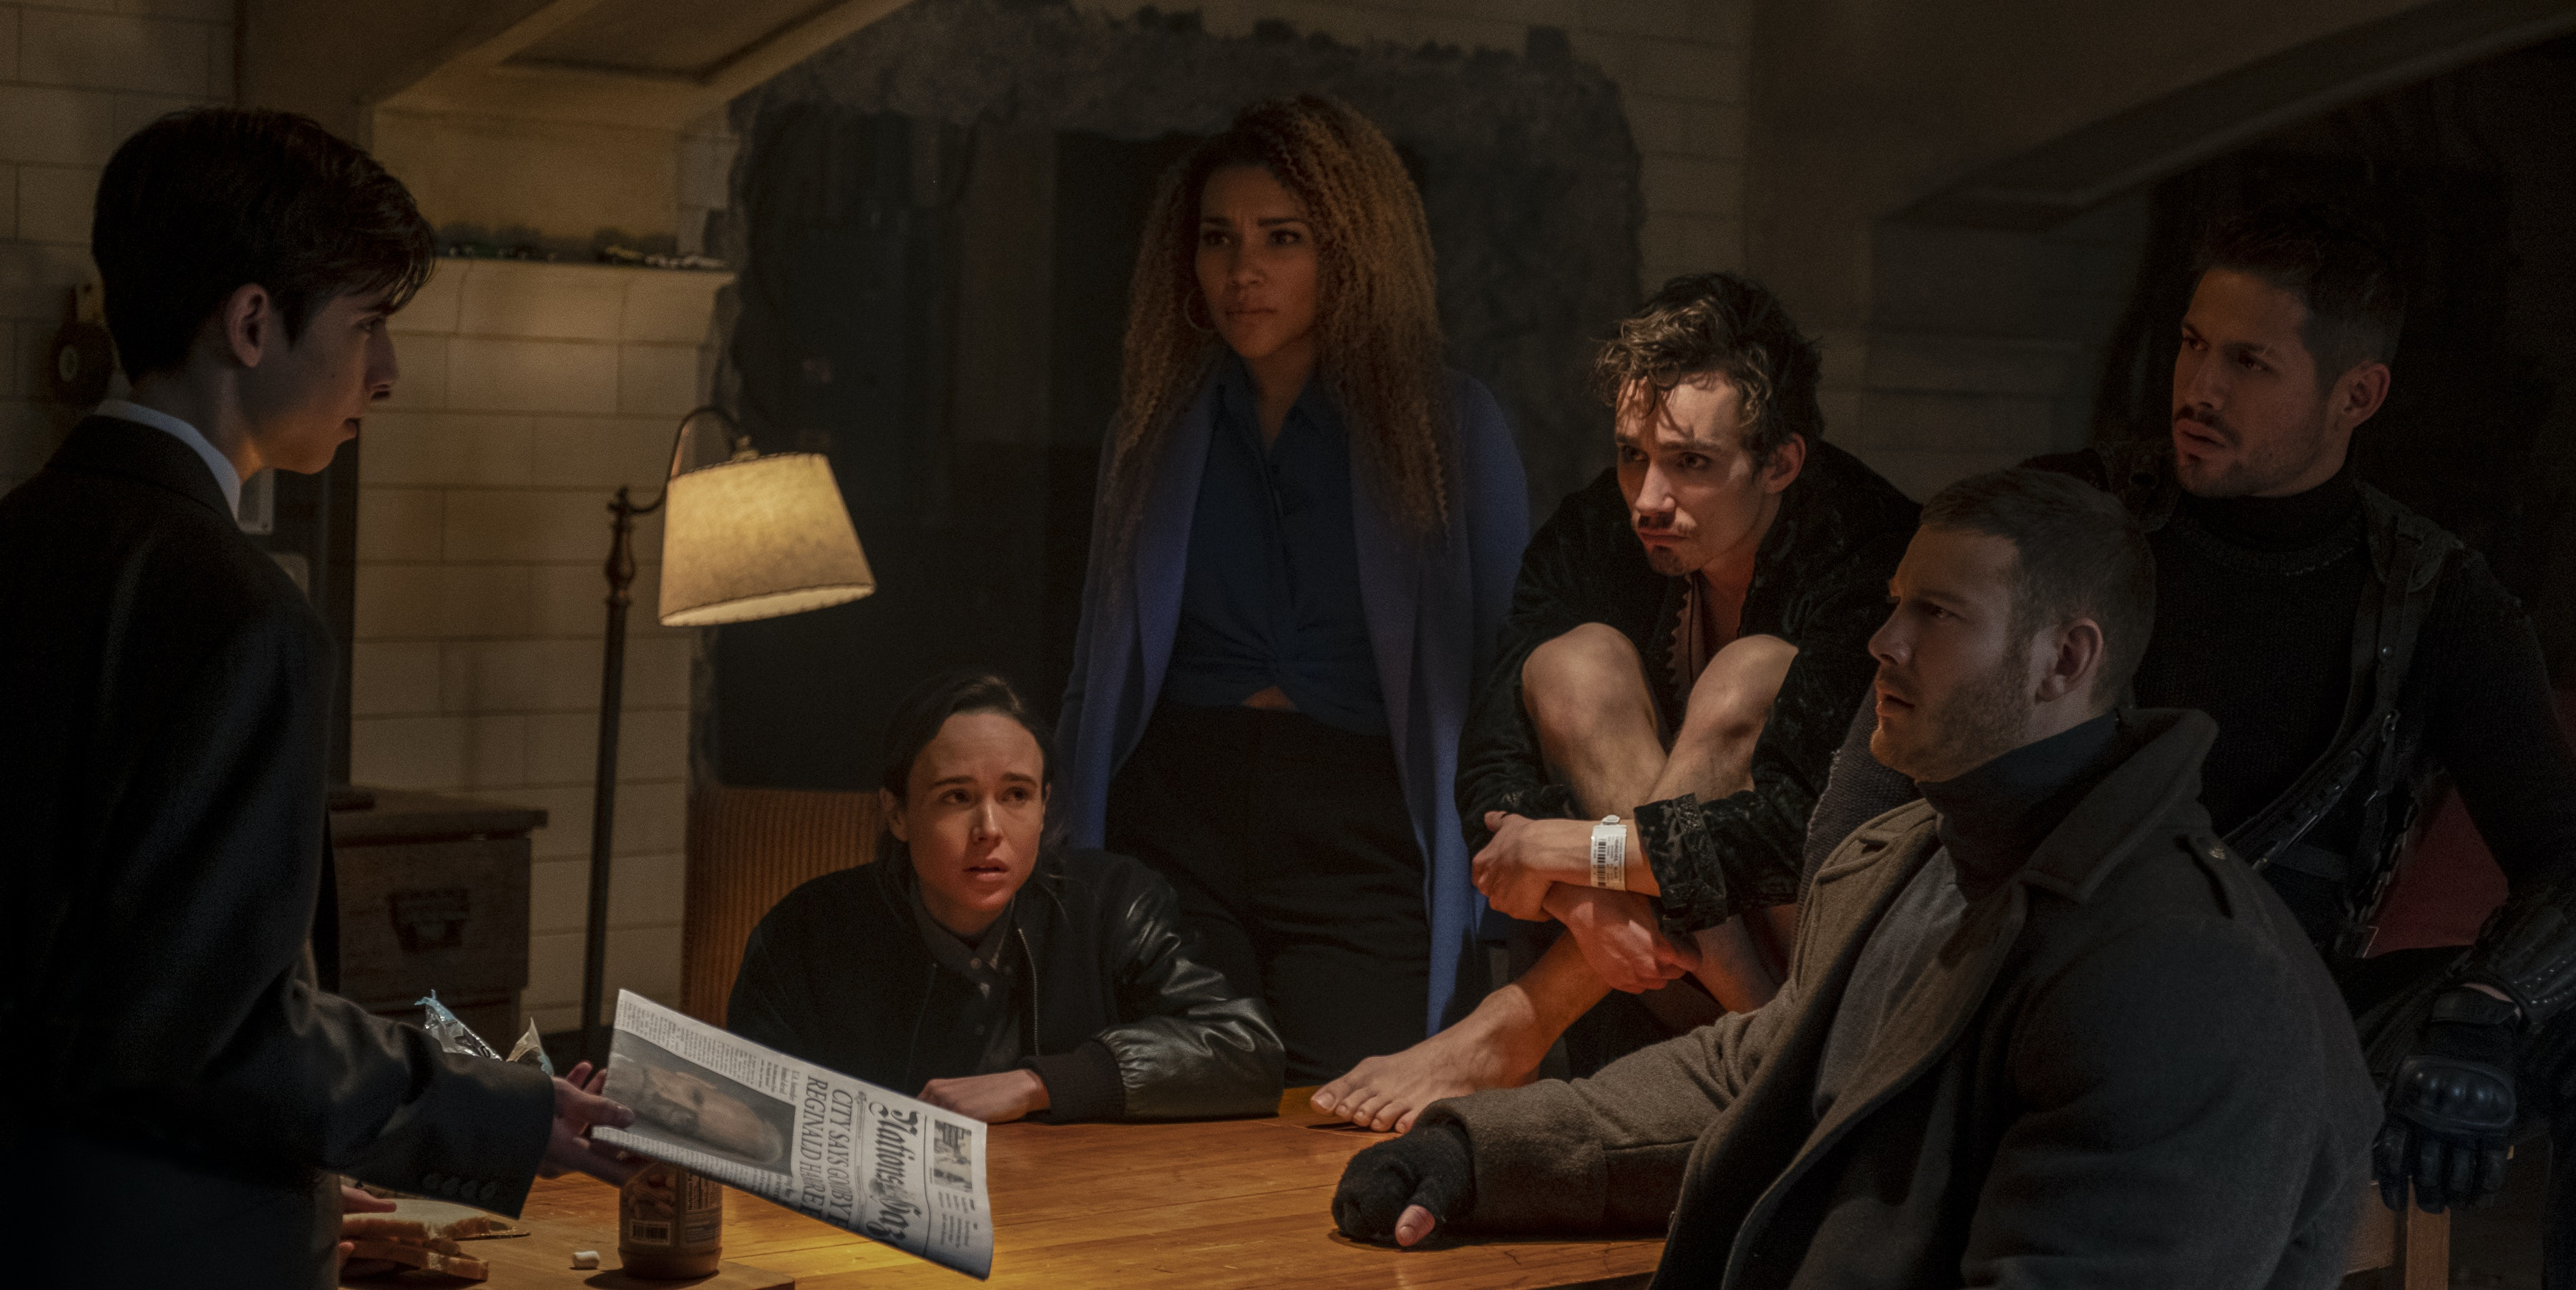 'The Umbrella Academy' Season 2 Renewal All but Confirmed in New Report